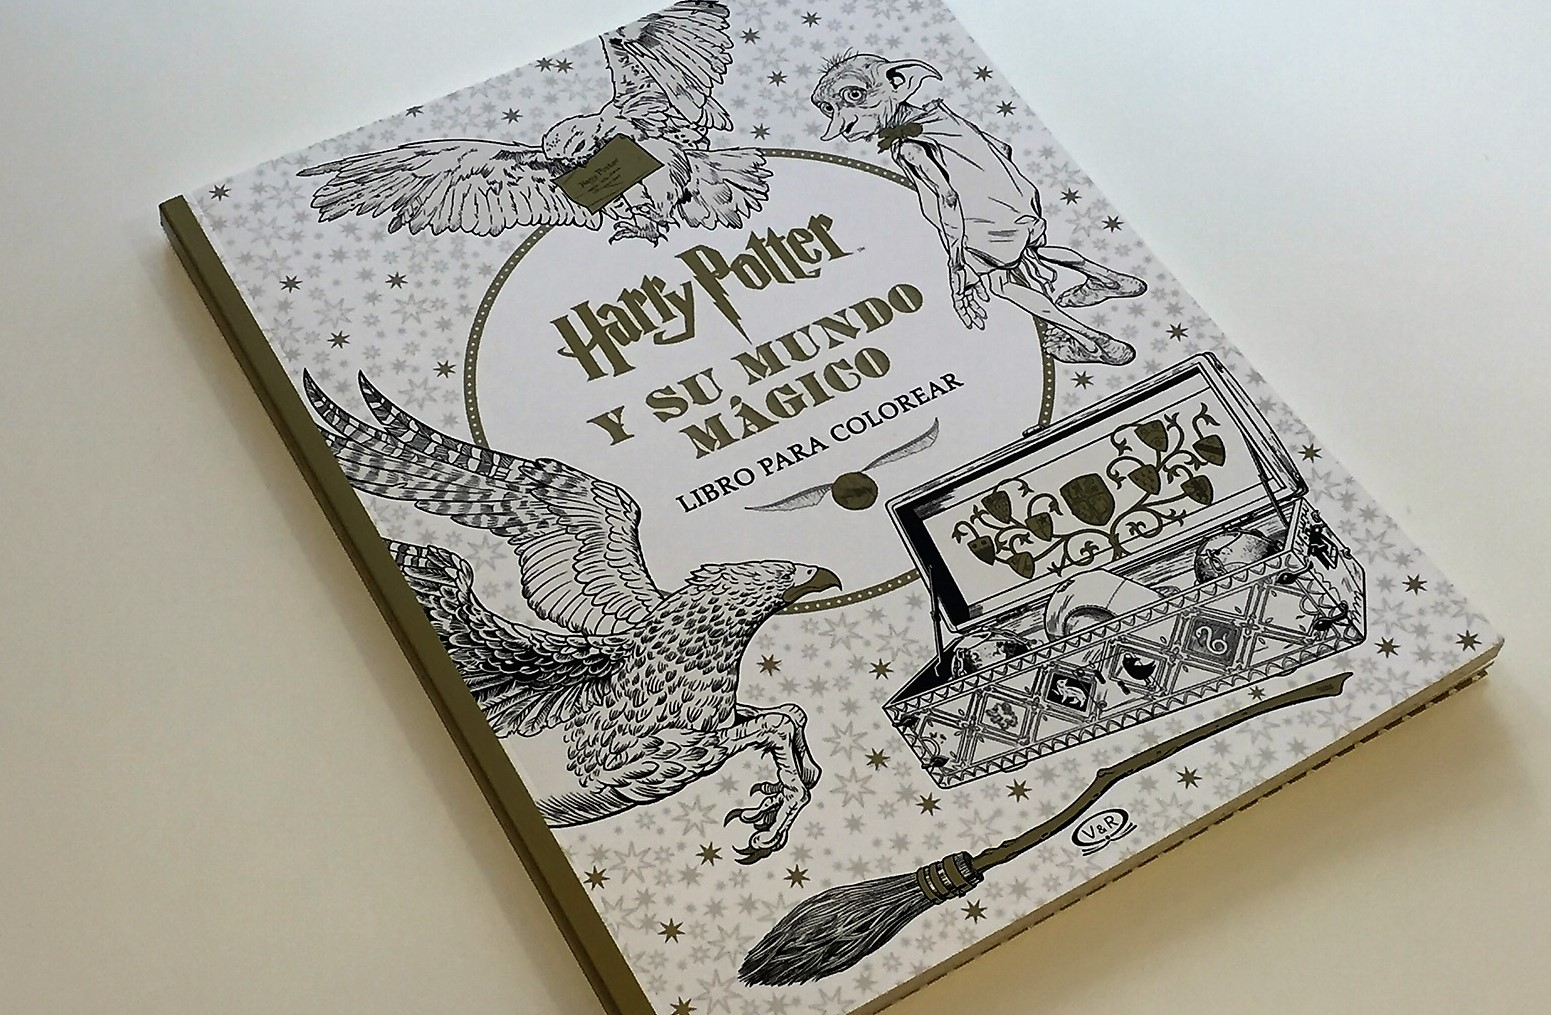 Paginas De Los Libros De Harry Potter Harry Potter Y Su Mundo Mágico Libro Para Colorear Ya